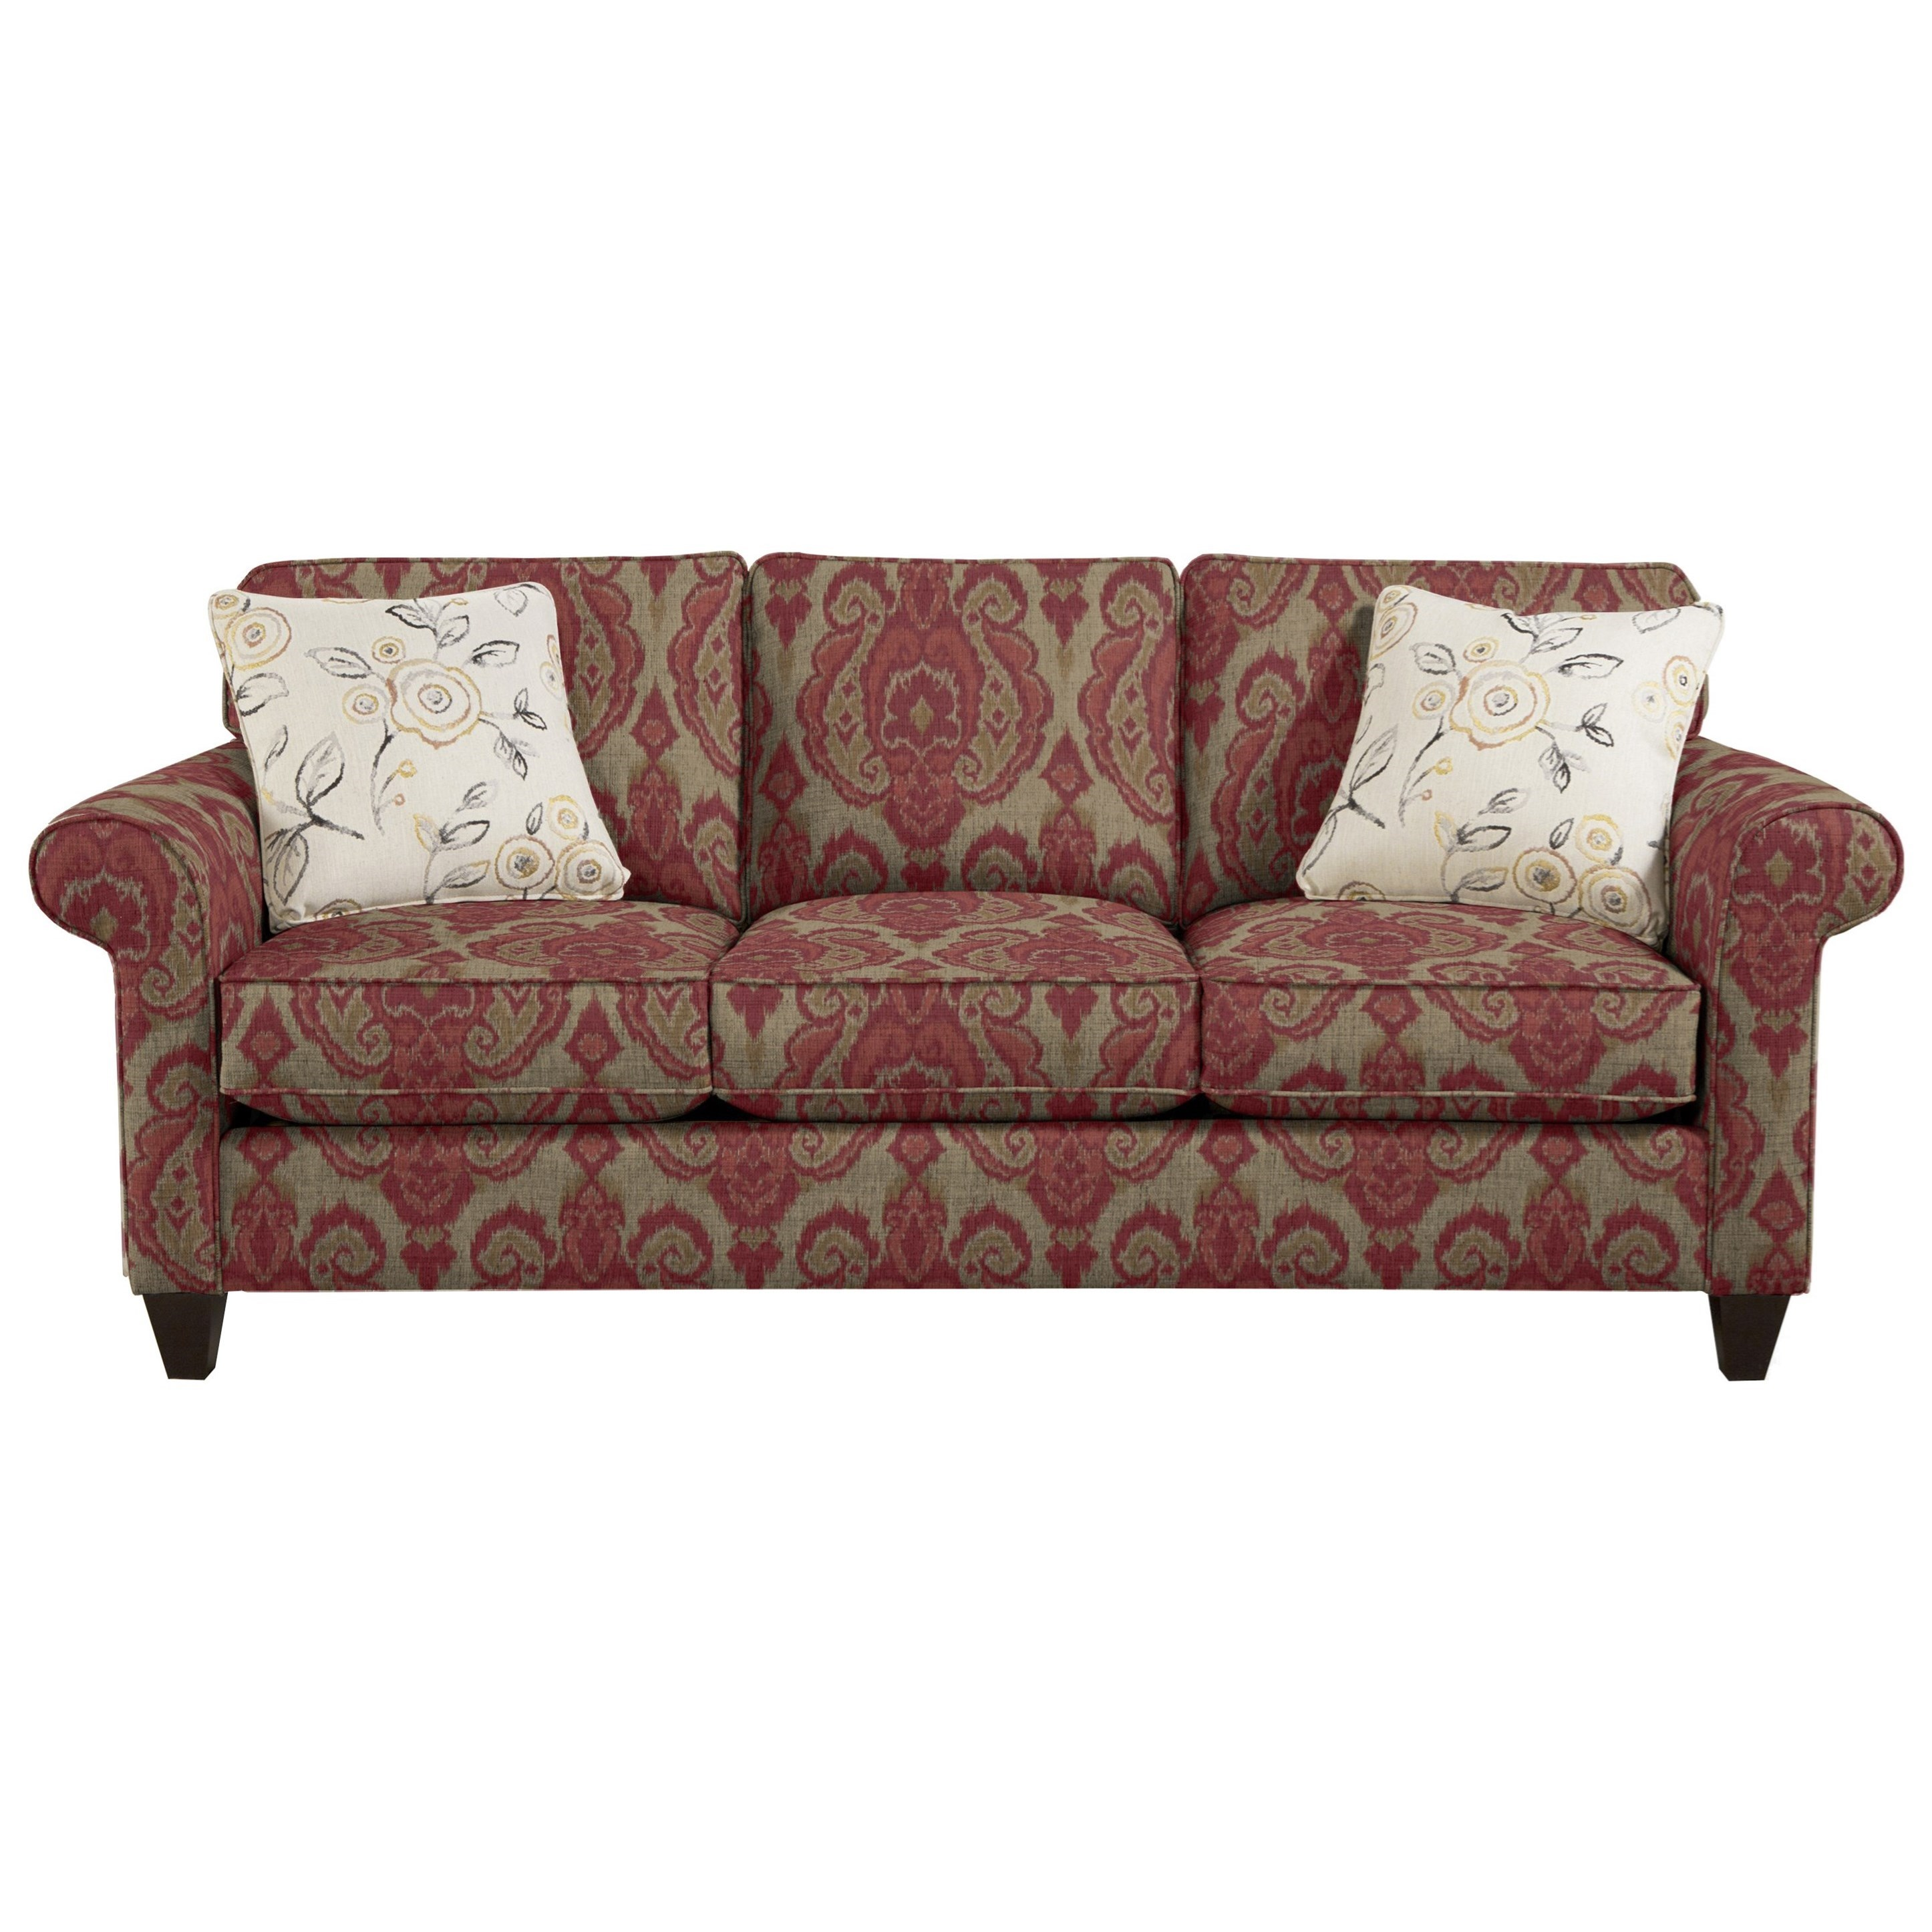 7421 Sofa by Craftmaster at Baer's Furniture